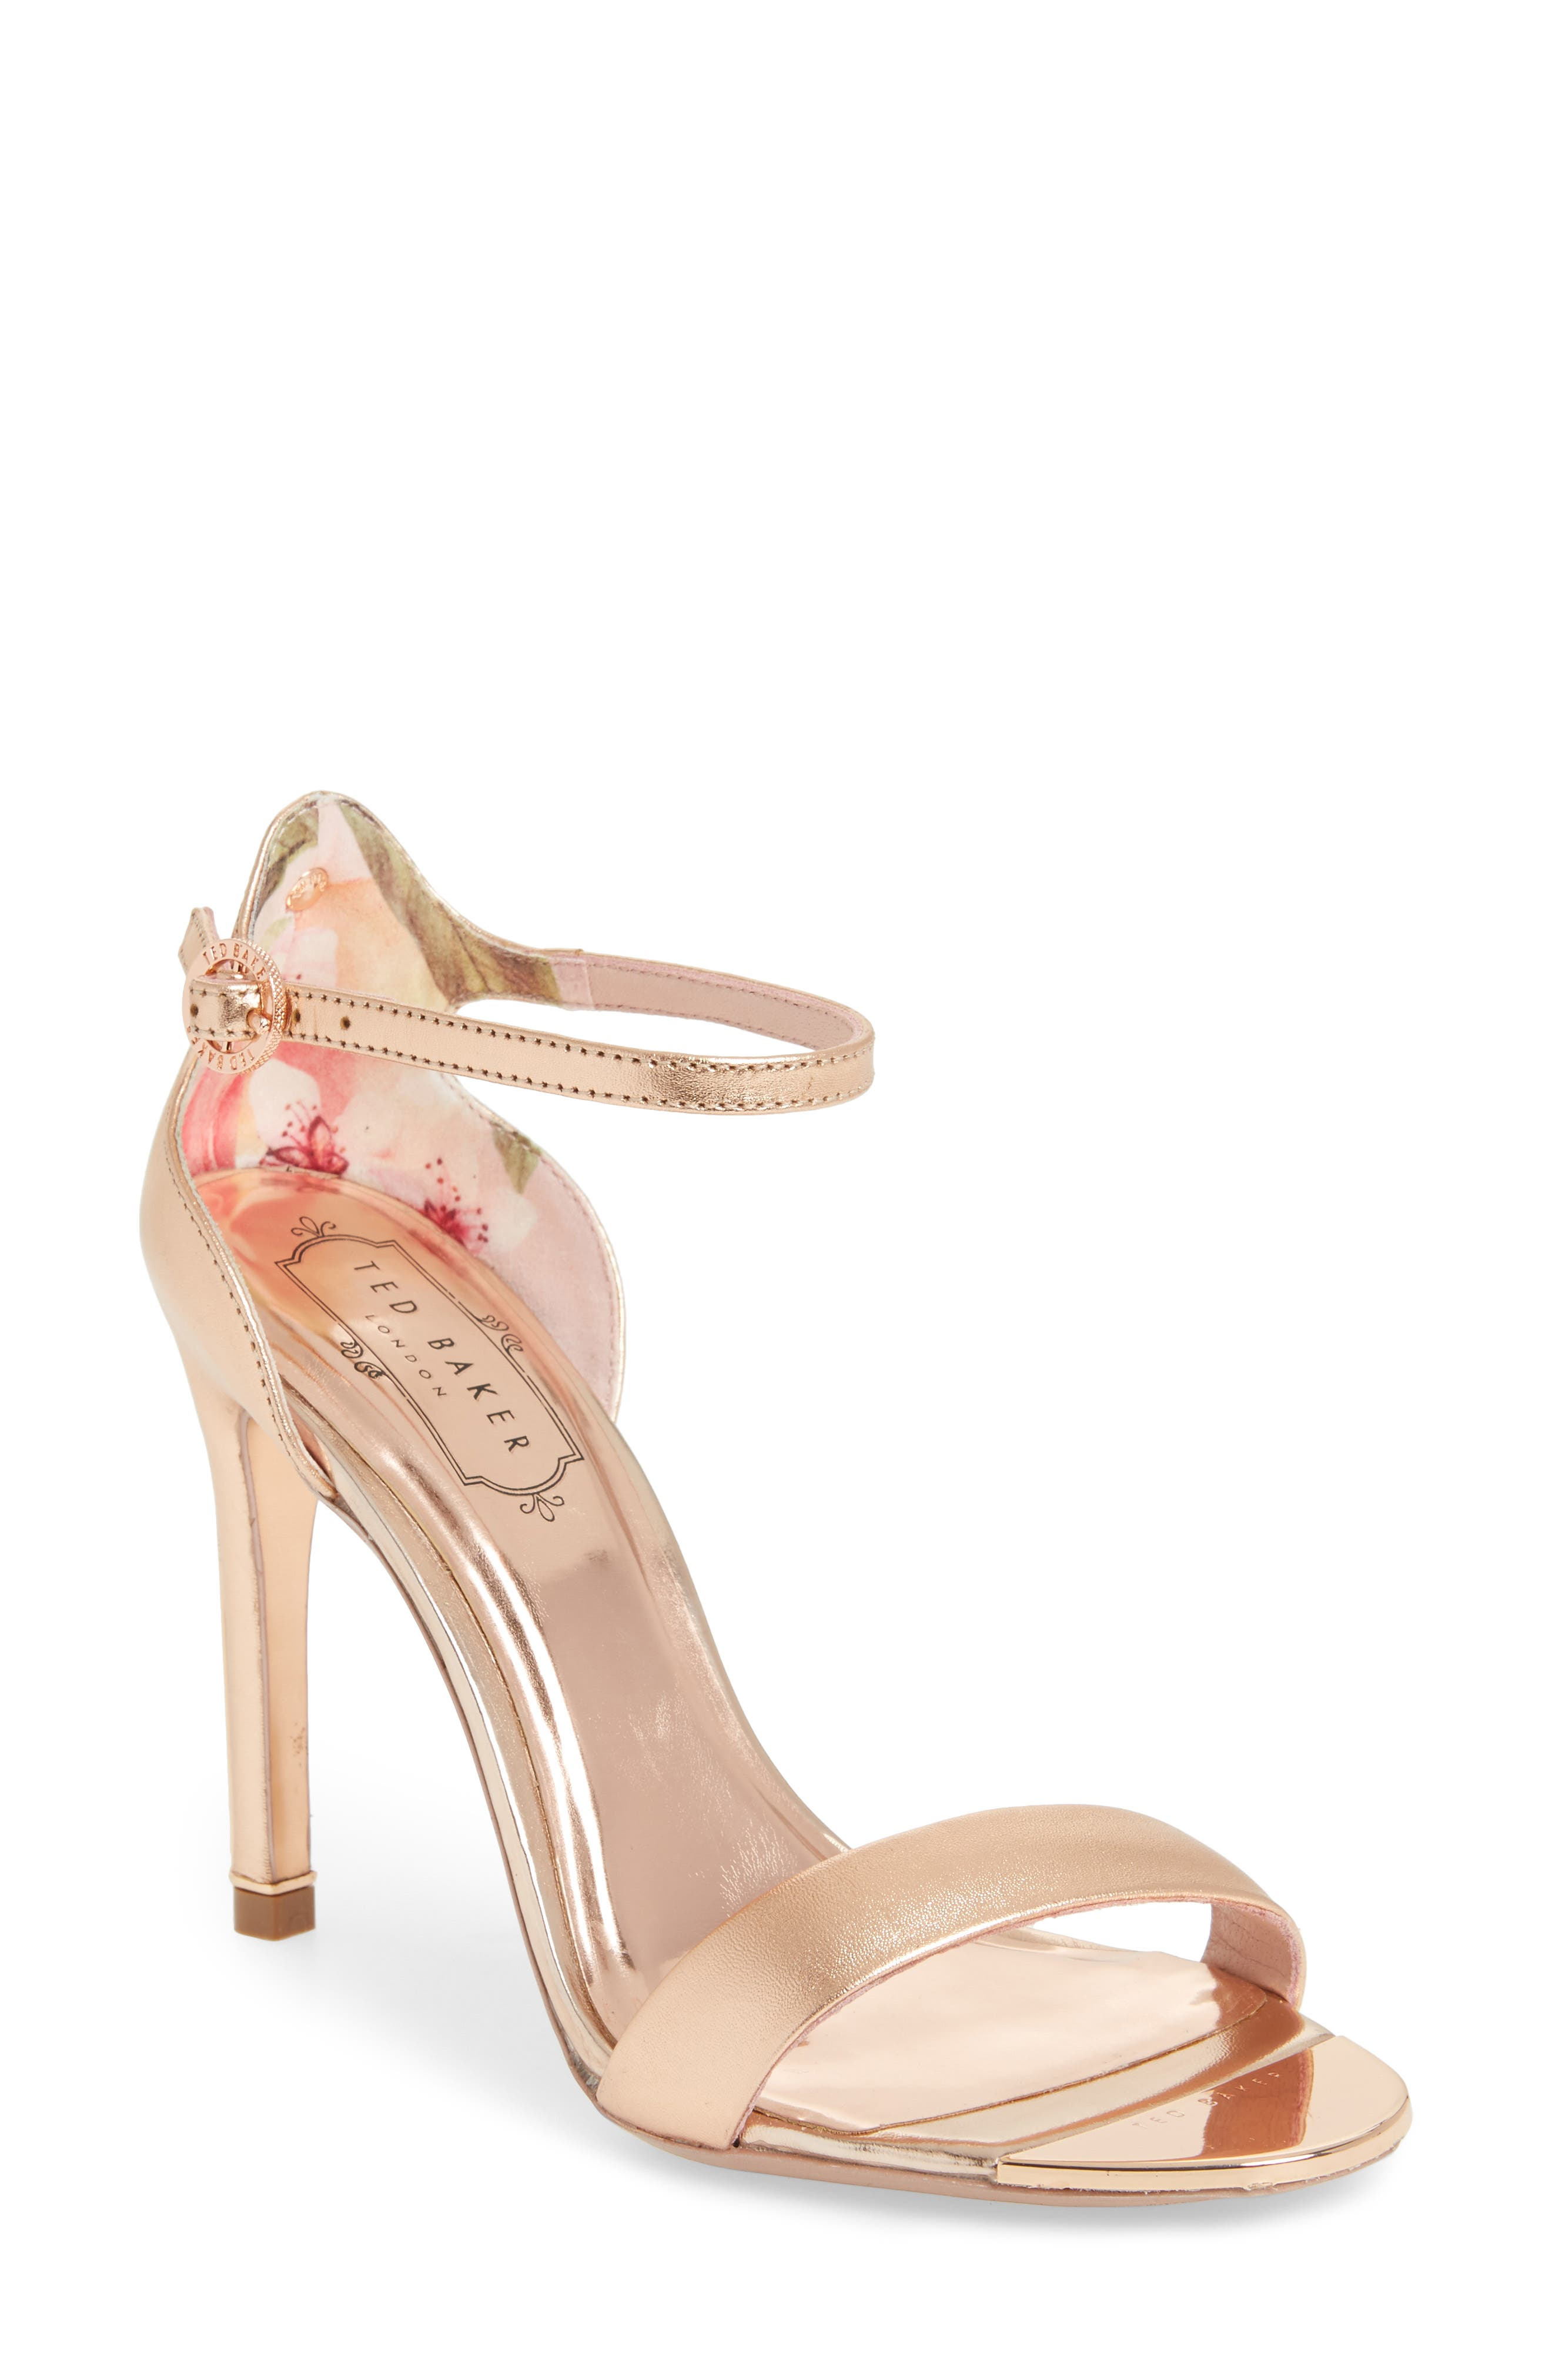 Sharlot Ankle Strap Sandal,                         Main,                         color, Rose Gold Leather